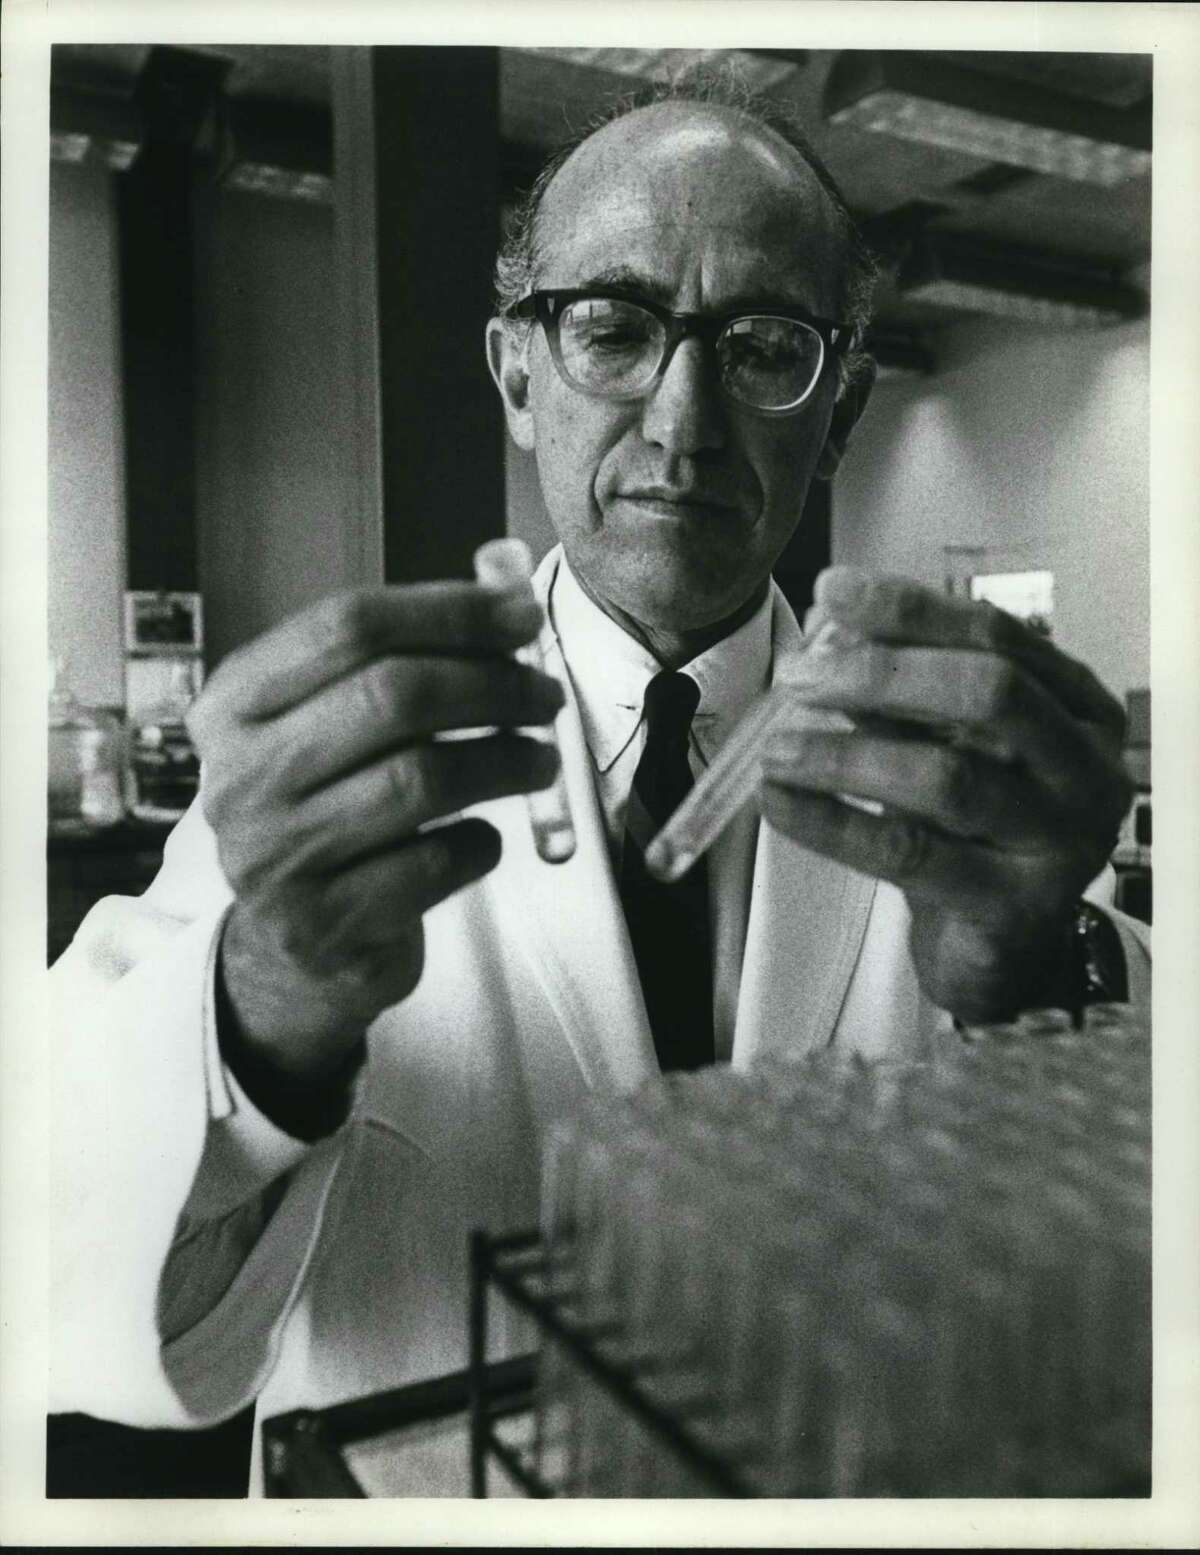 Dr. Jonas Salk conducting an experiment in his laboratory. Salk developed a vaccine for polio that was eventually distributed in Montgomery County.